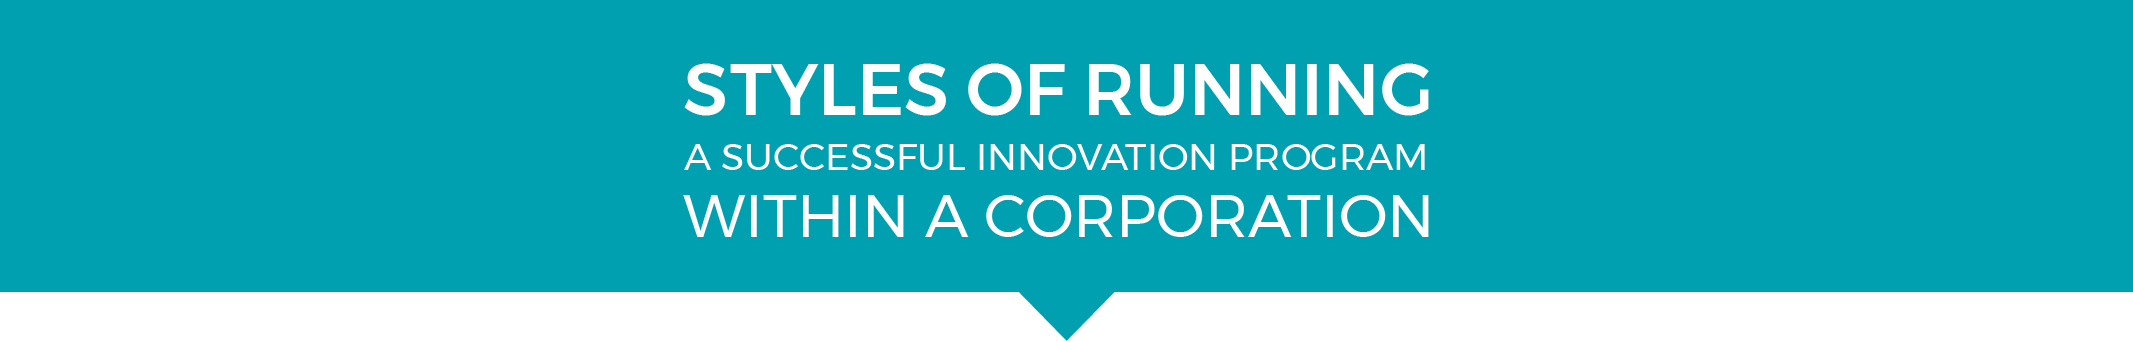 STYLES_OF_RUNNING_A_SUCCESSFUL_INNOVATION_PROGRAM_WITHIN_A_CORPORATION